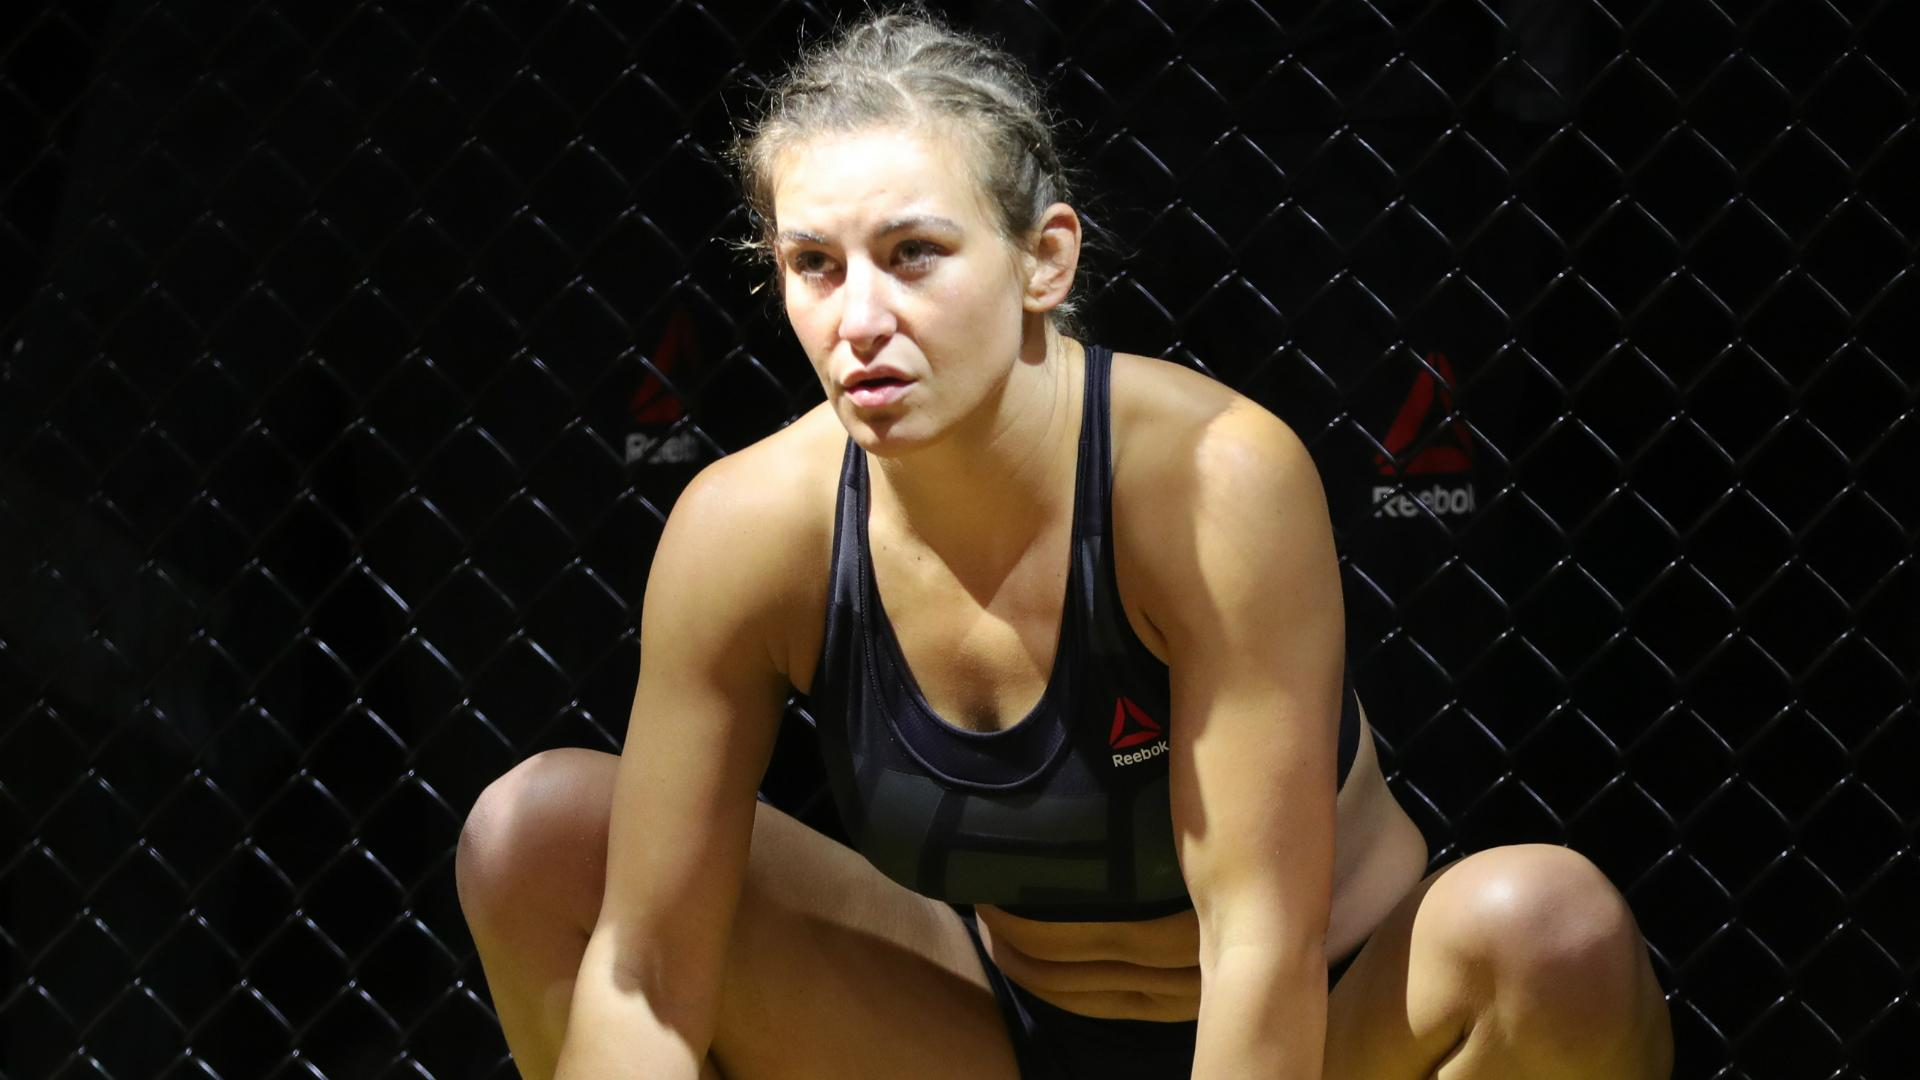 Did Miesha Tate Retire